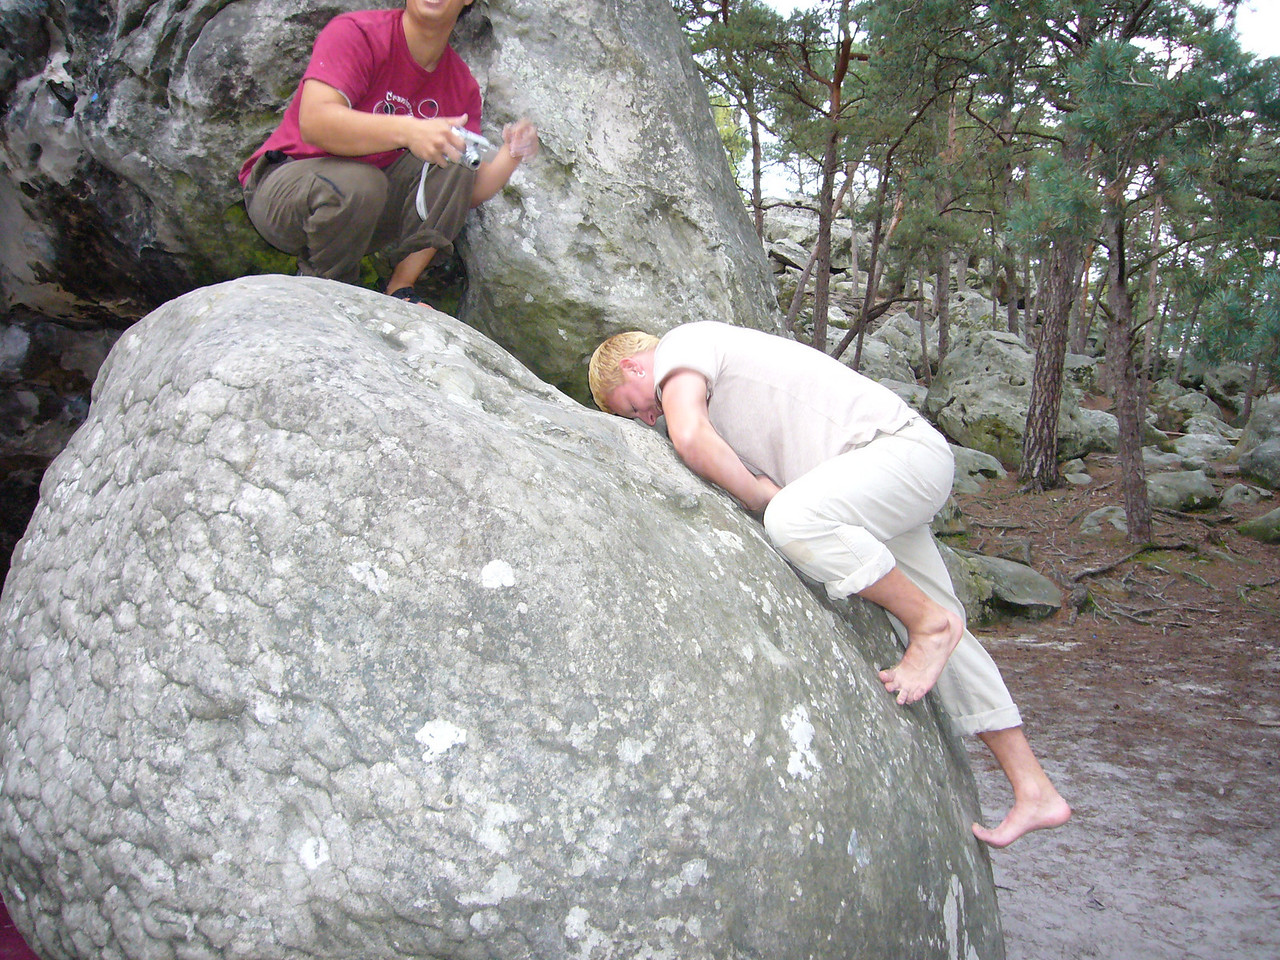 I got up this rock with a running ascents, then Alvin (red shirt) did it.  For Brian's attempt I think gravities pull was stronger.